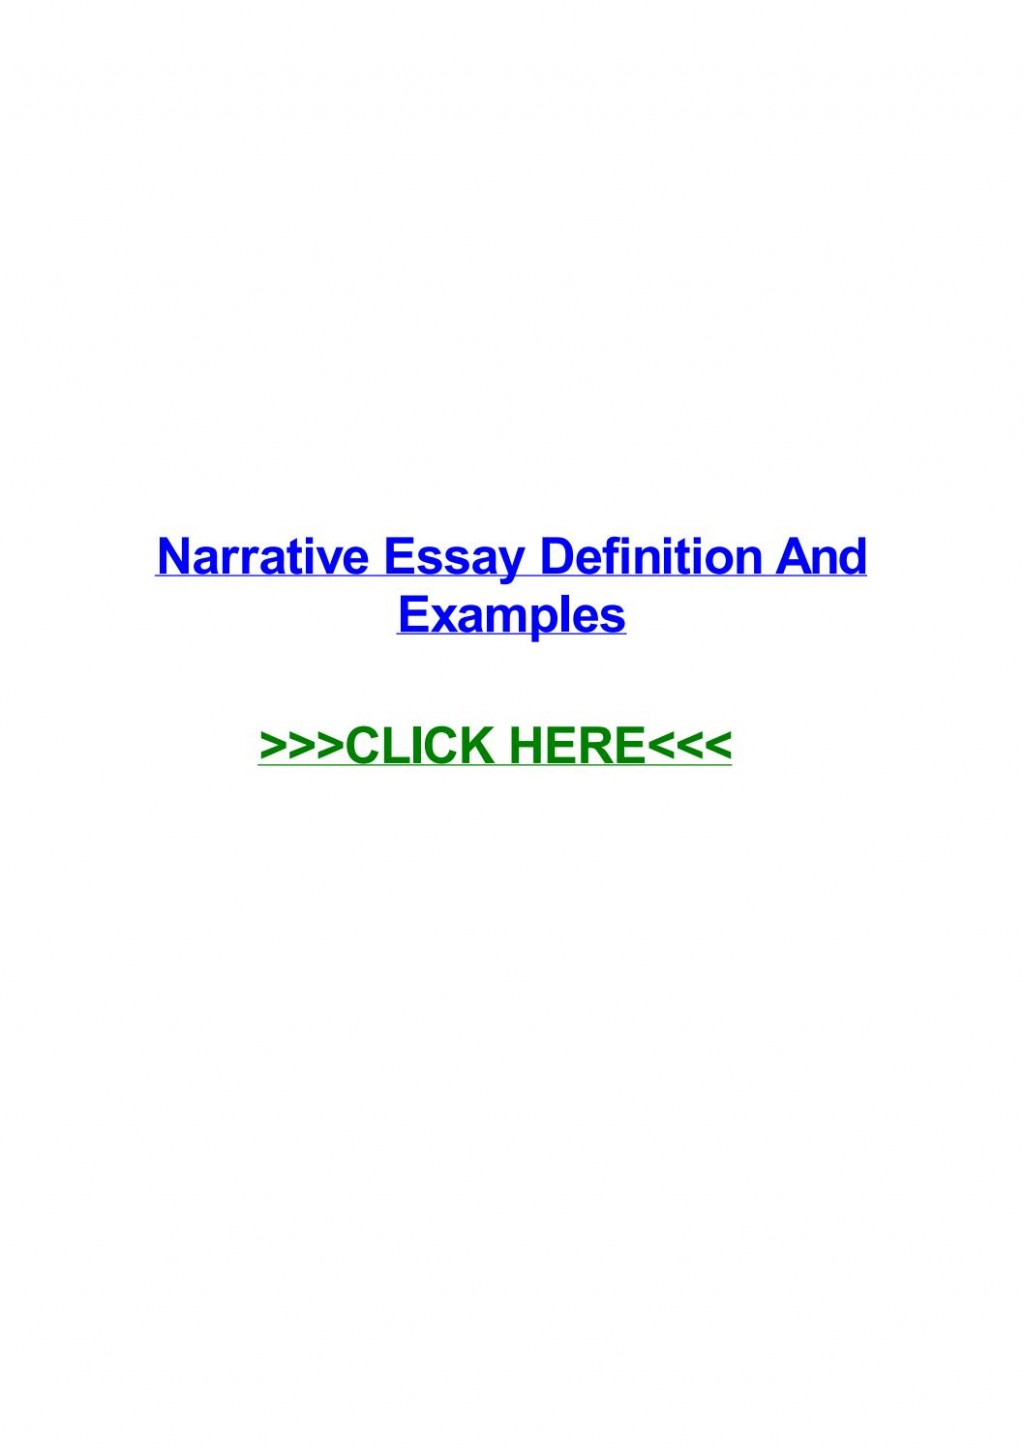 014 Narrative Essay Definition Example Page 1 Stunning Literature Meaning Large